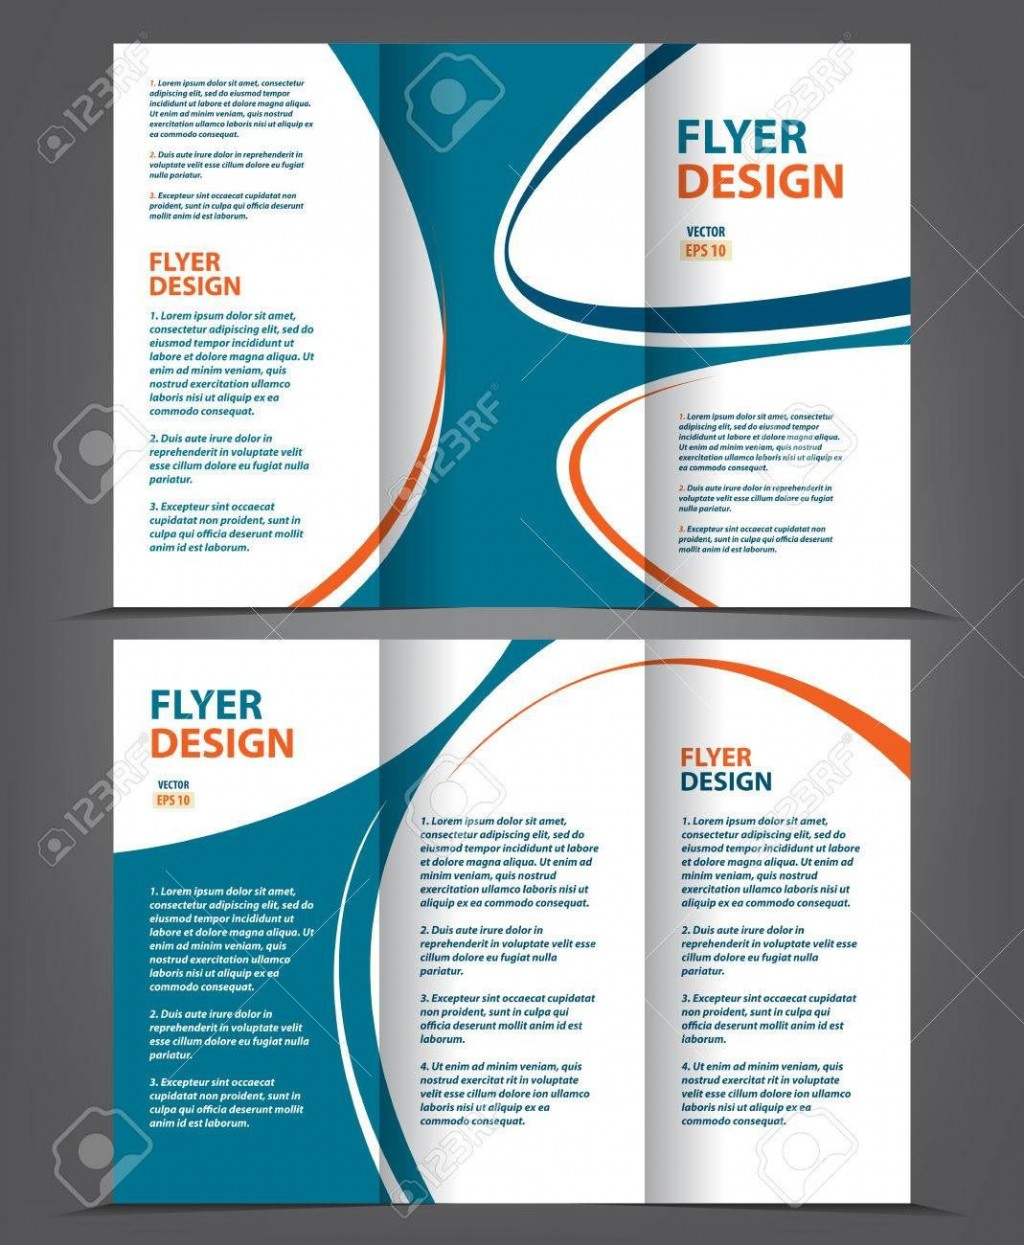 002 Frightening 3 Fold Brochure Template Highest Clarity  Templates For FreeLarge